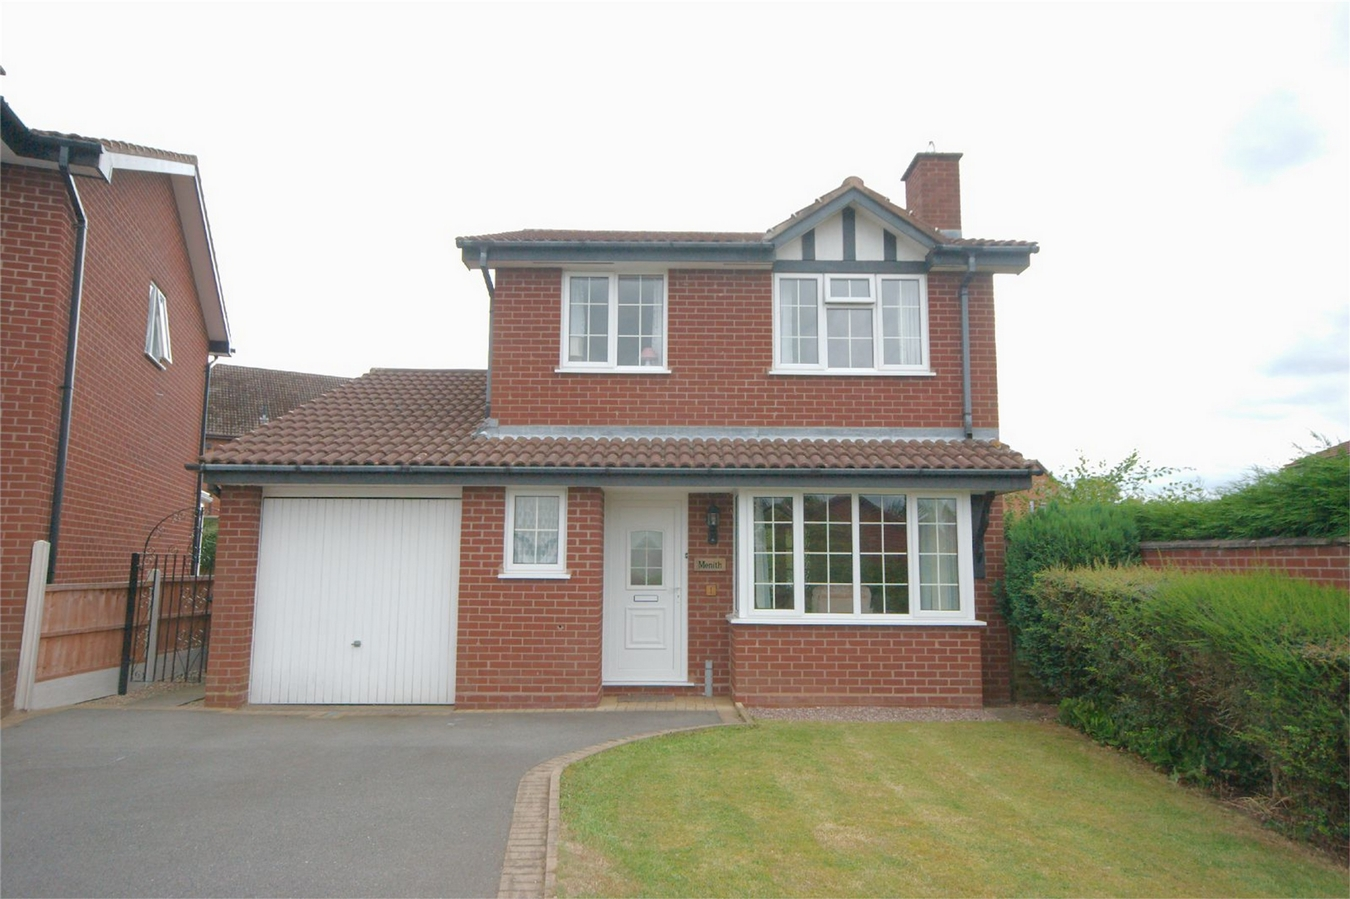 3 bedroom Detached House for sale in SUTTON COLDFIELD